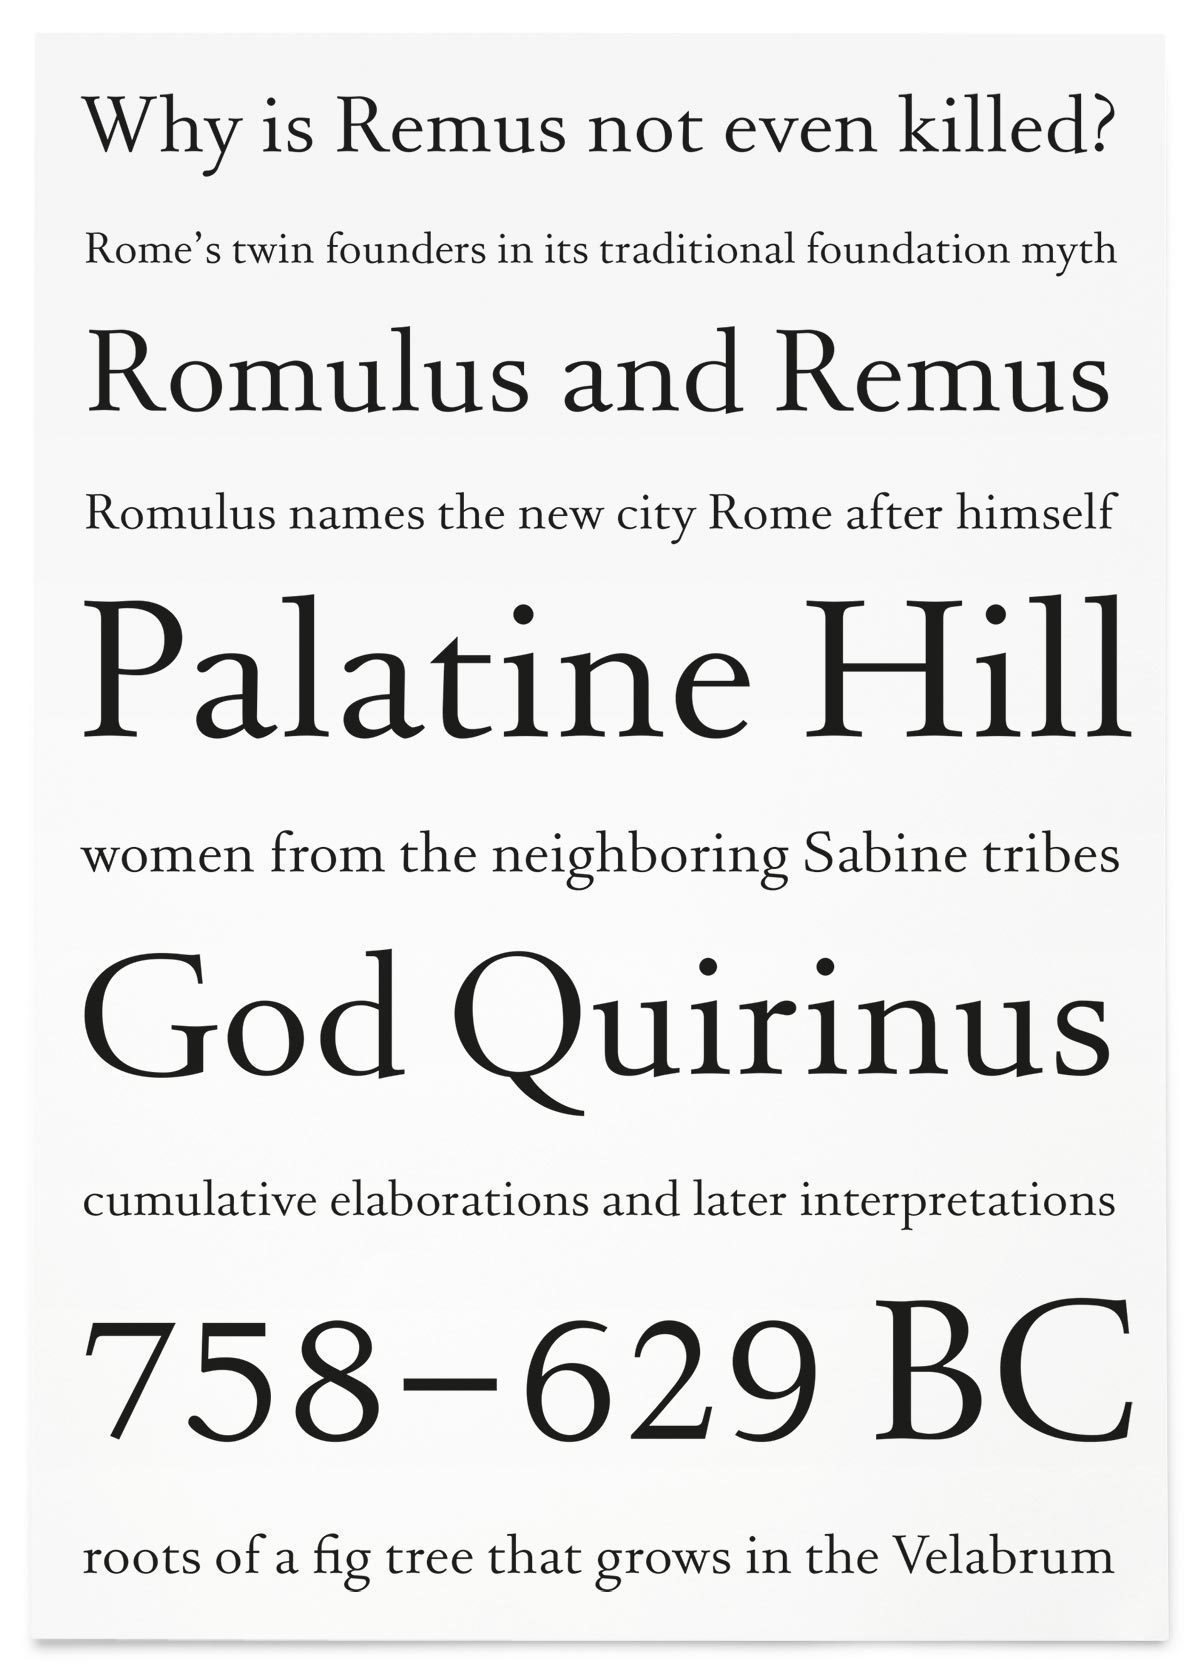 Until today Jan van Krimpen's Romulus has not been made available digitally. This is an uncommercial revival by [Alexander Roth](/people/alexander-roth), designed in the [Type and Media](http://typemedia2012.com) Masters course at the [Royal Academy of Art](http://www.kabk.nl/), The Hague in 2012.